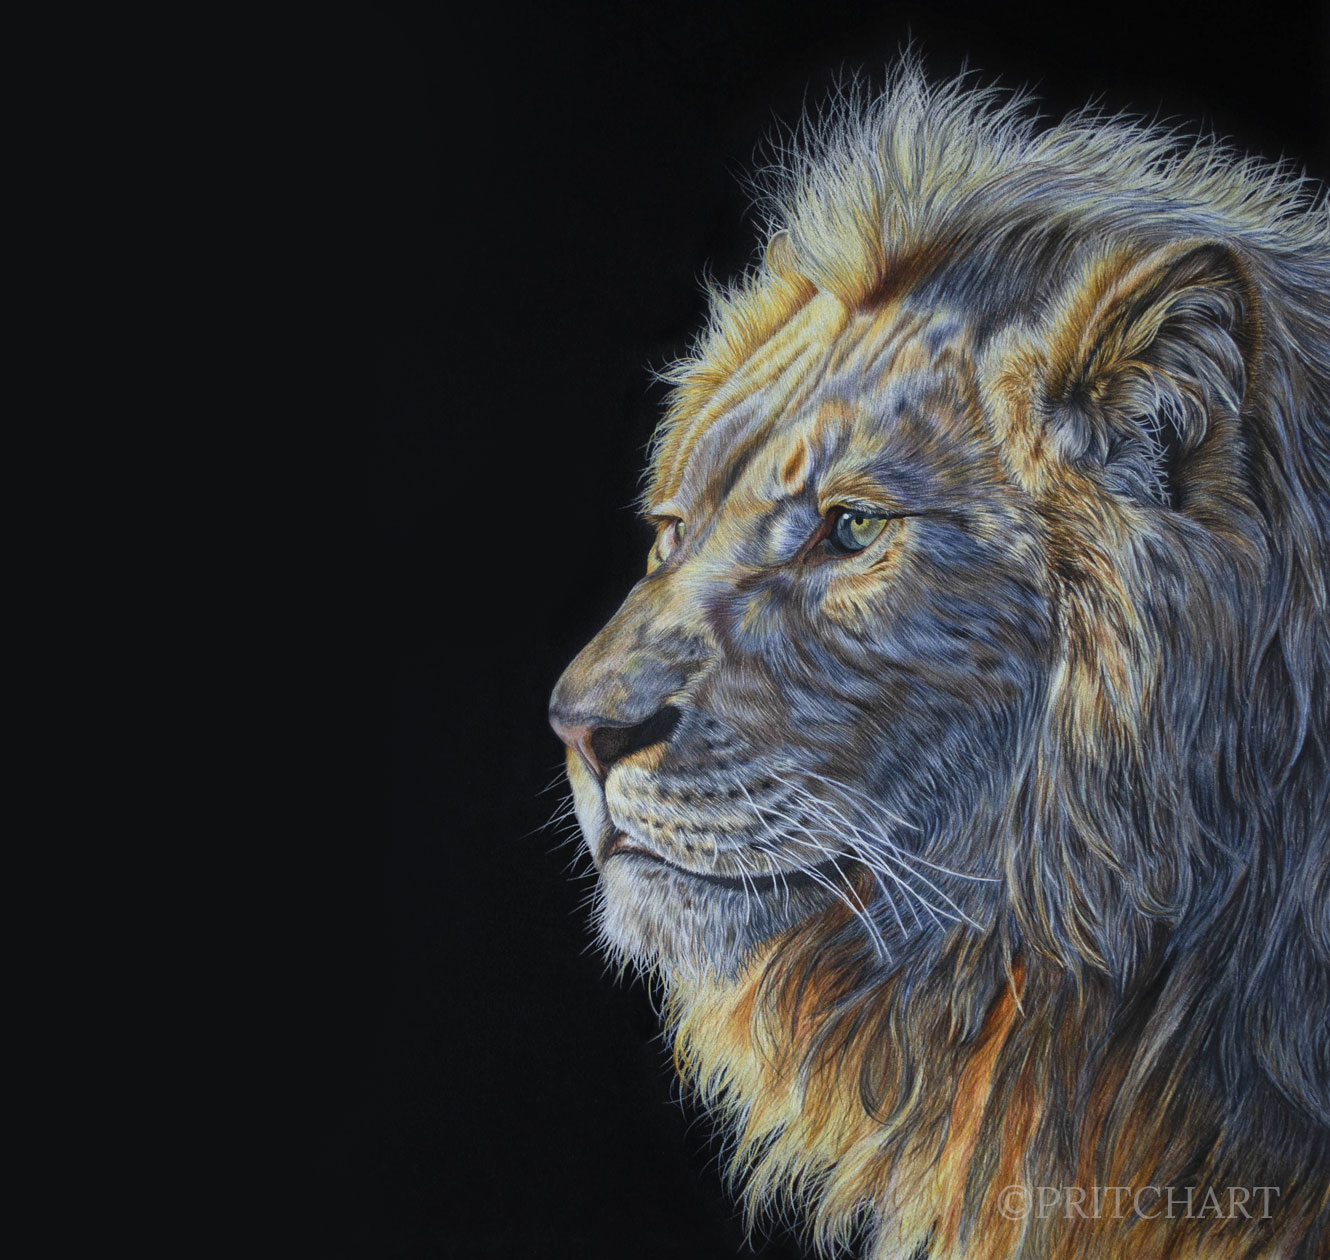 Pritch Art - 'Dawn of the King' African Lion